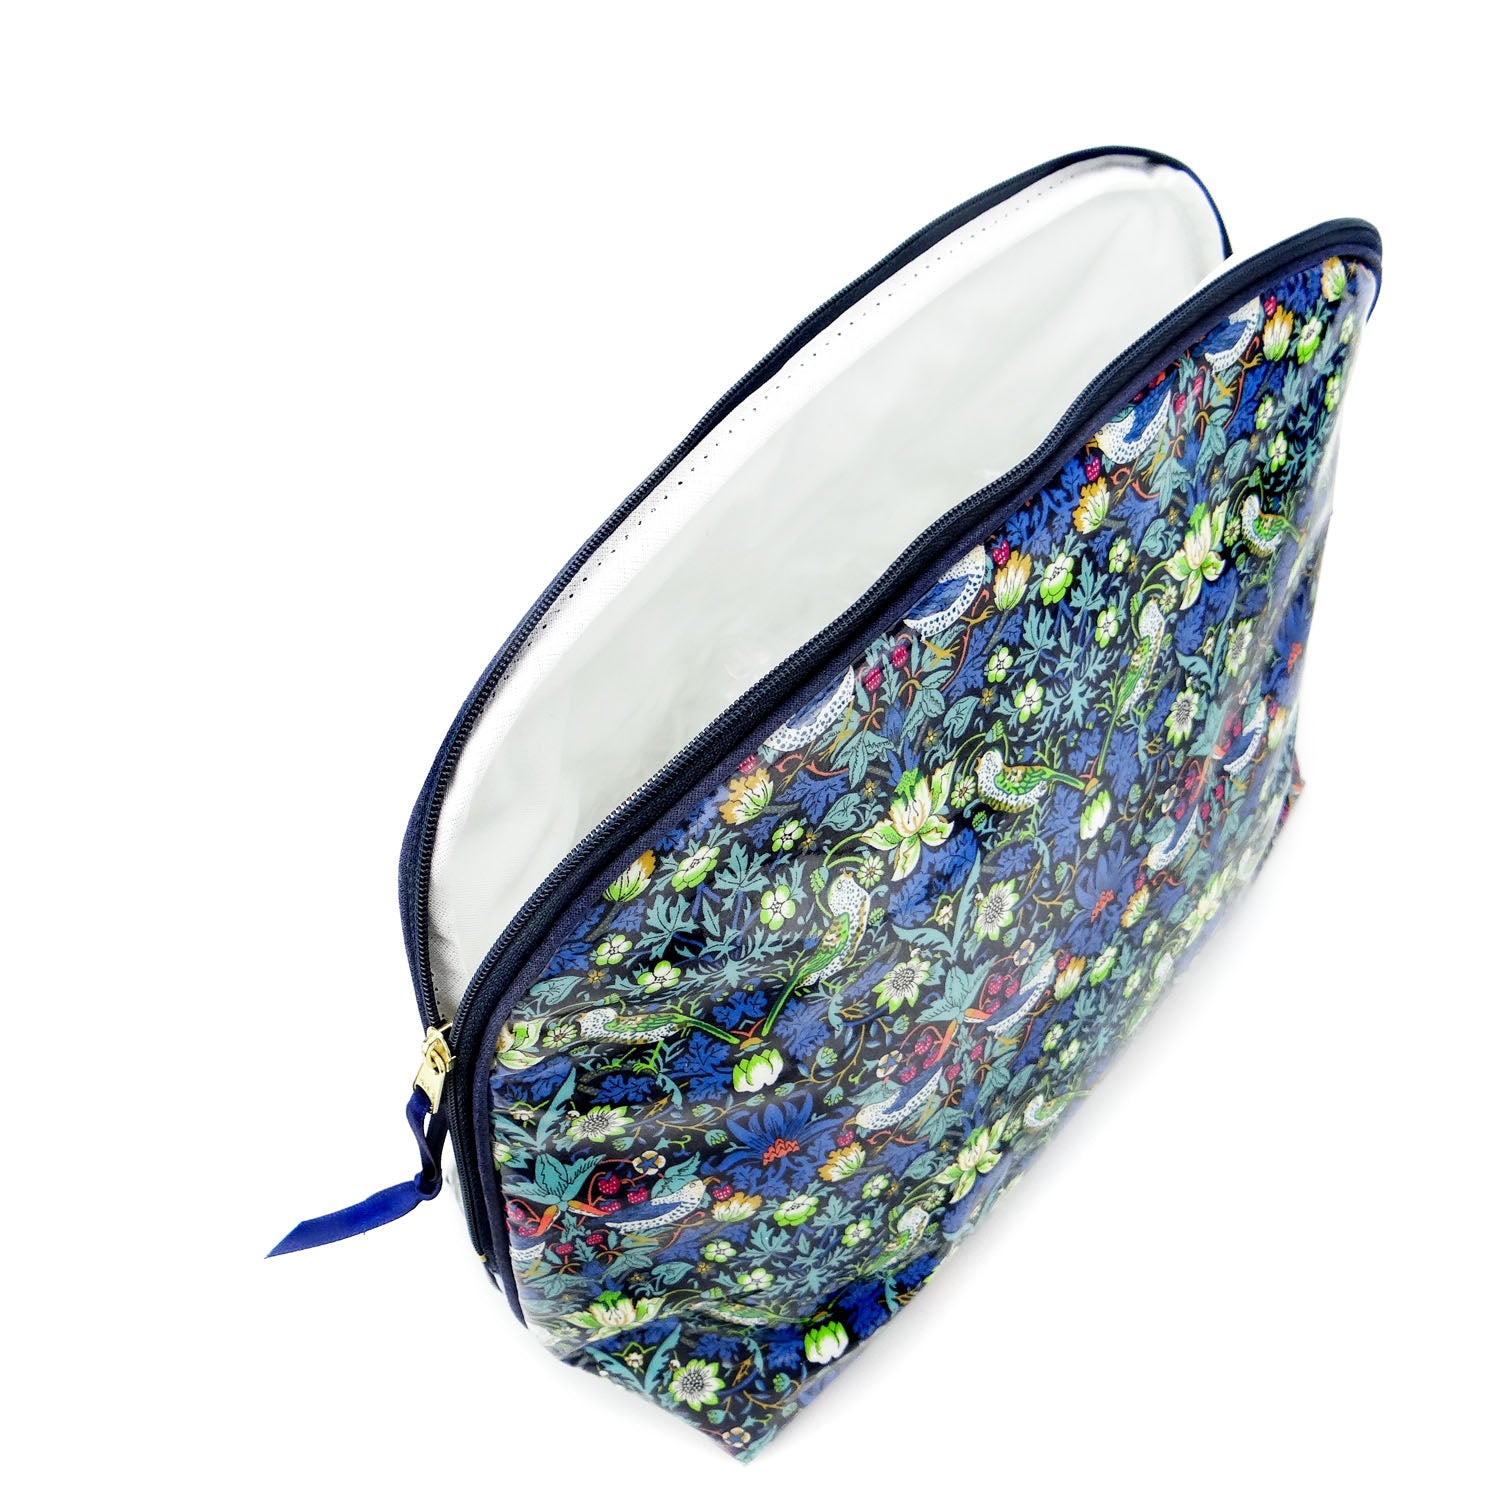 Large Round Top Wash Bag Strawberry Thief Blue - Alessandra Handmade Creations